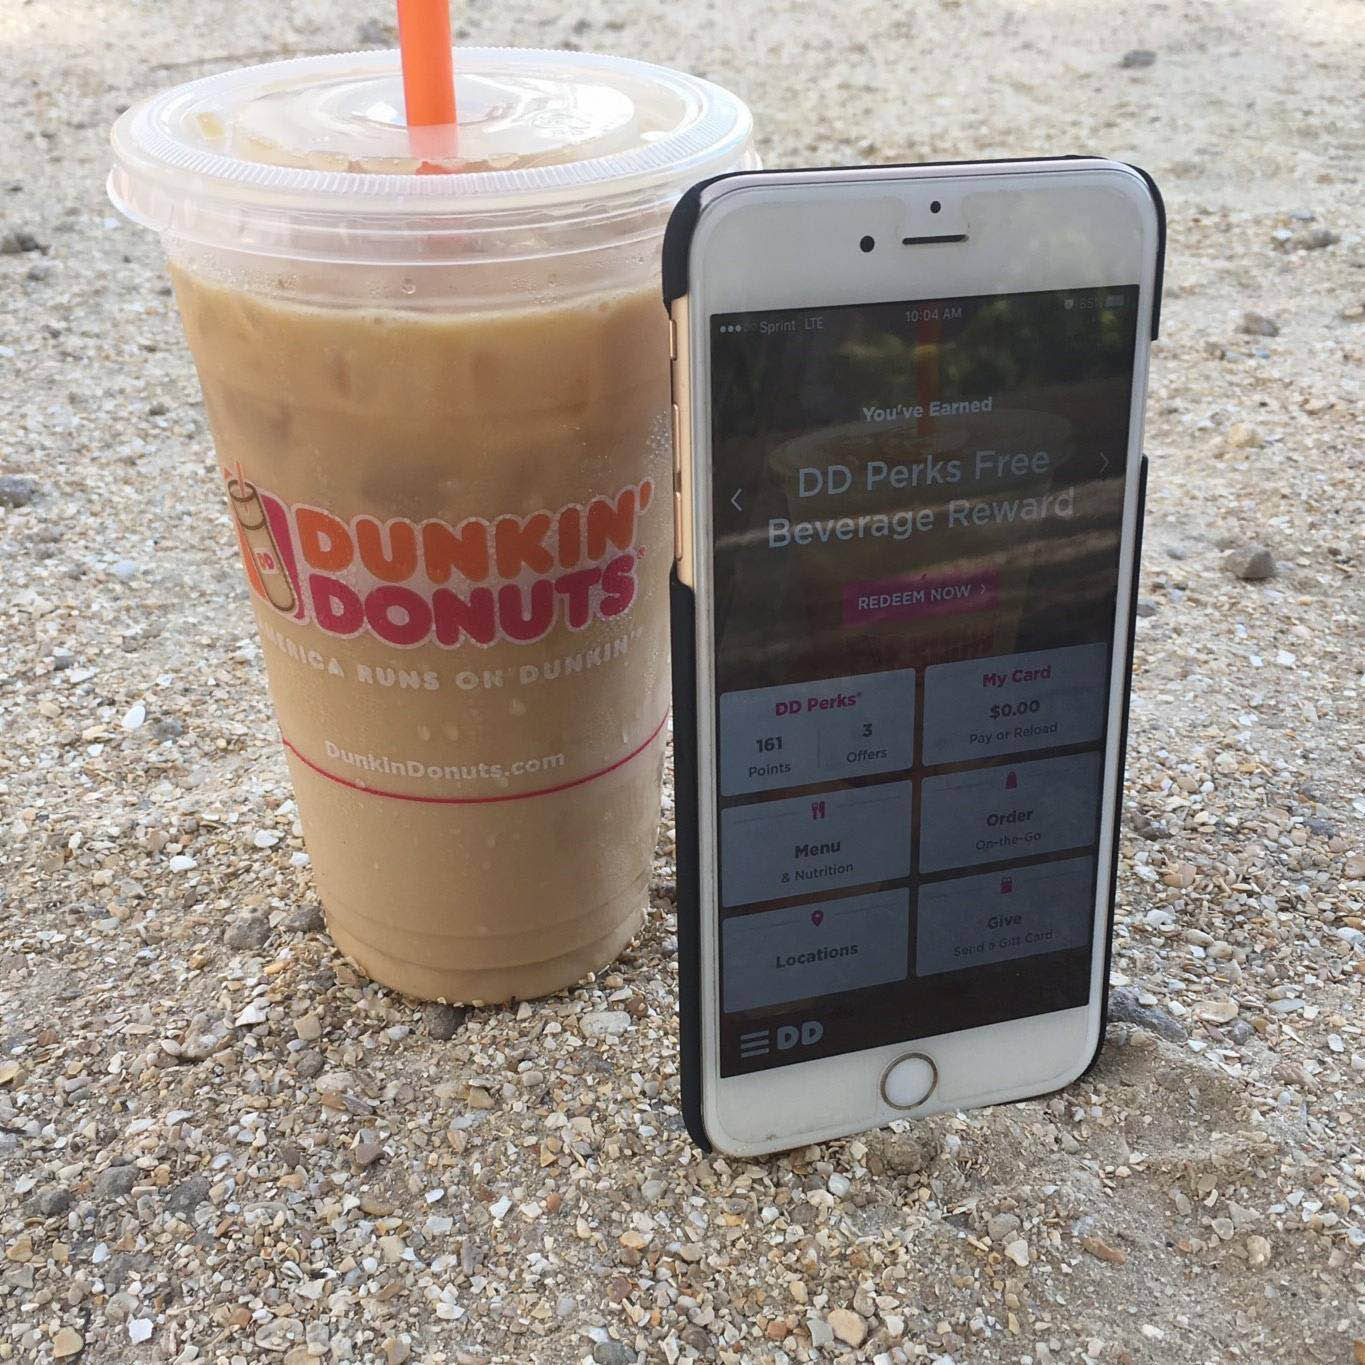 Order with the Dunkin' Donuts app